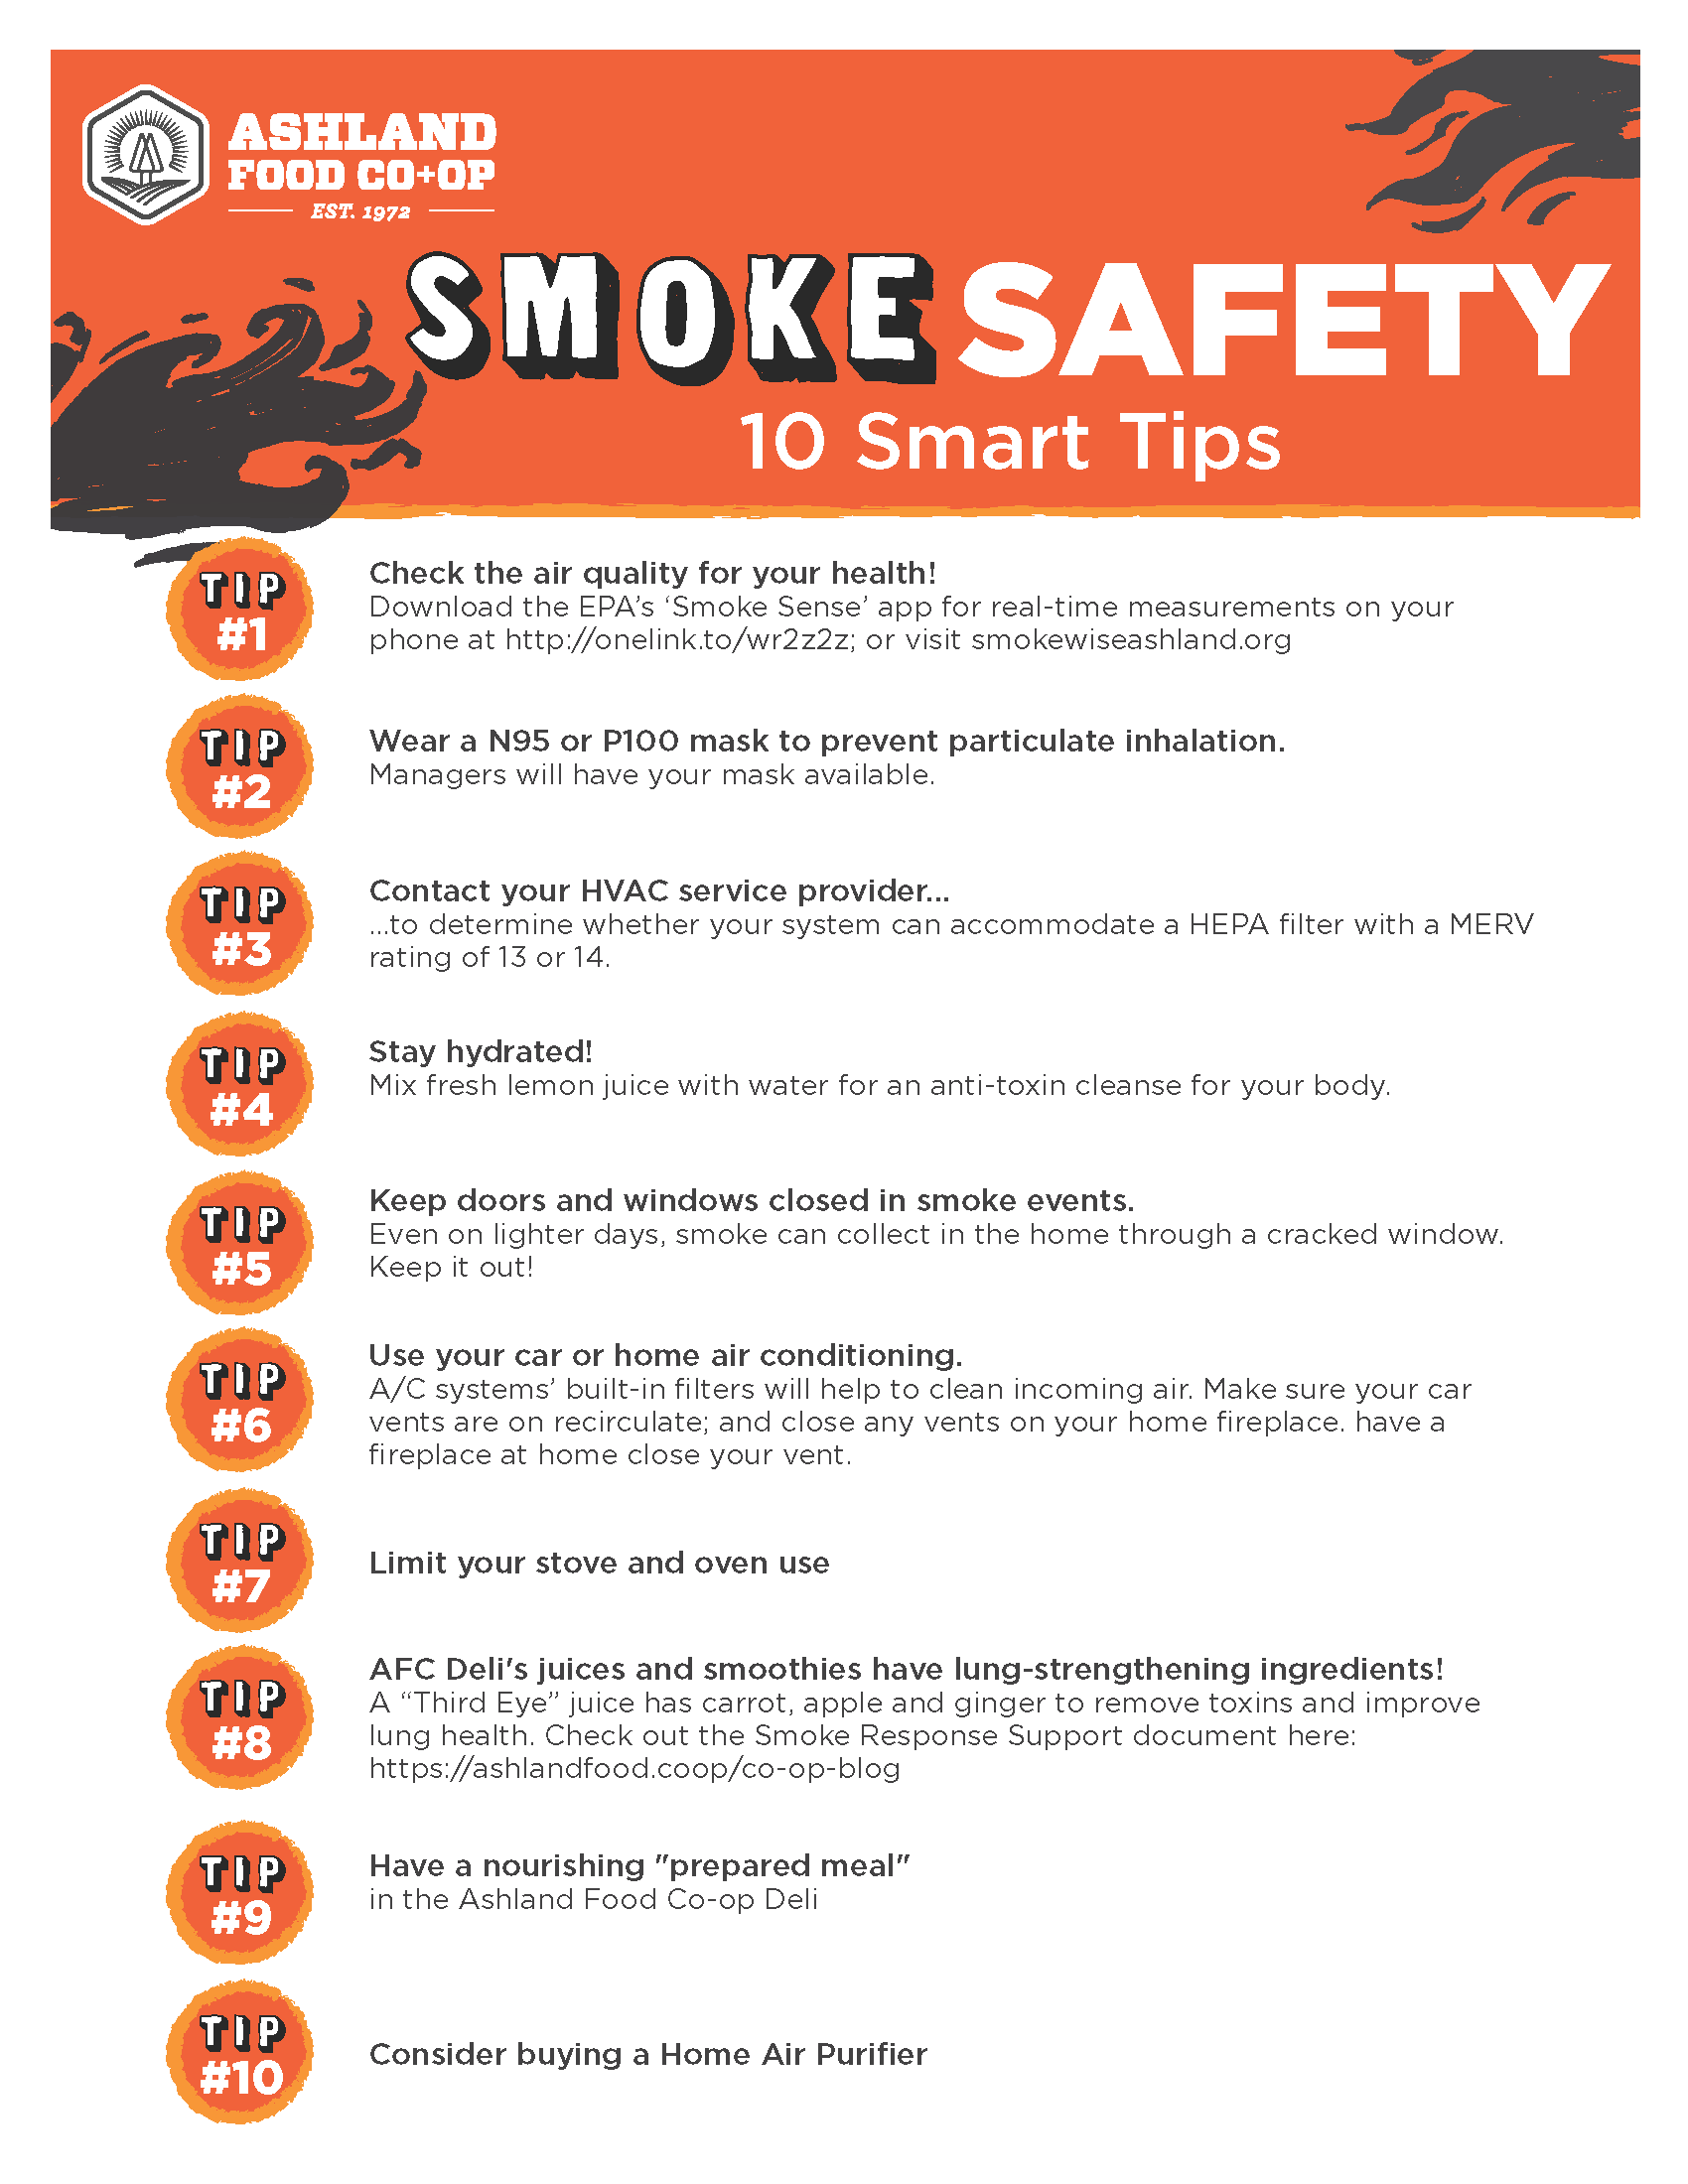 Smoke Safety Tips